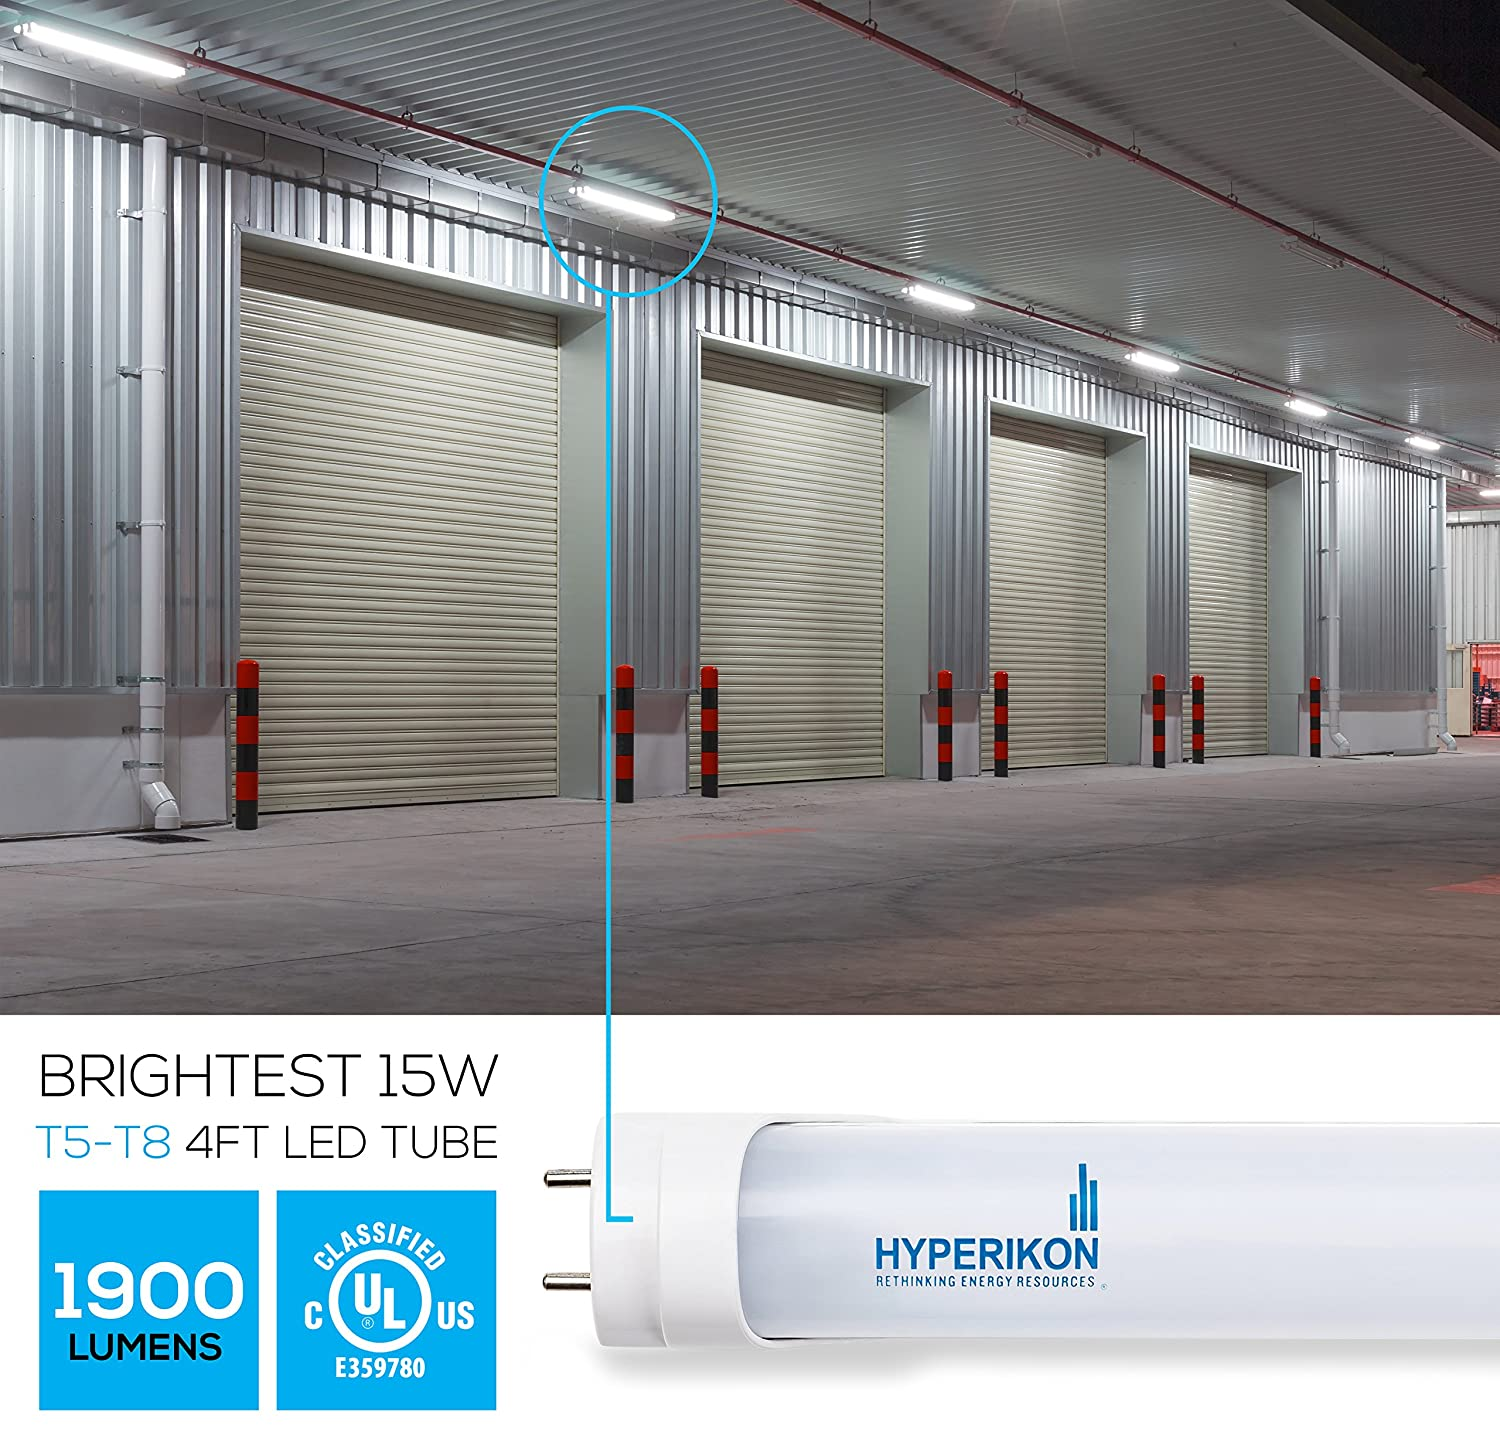 Hyperikon T5 T8 Led Light Tube 4 Ft 4525 Inches 22w 50w Fixture Wiring Diagram Equivalent 5000k Crystal White Glow 120 277v Dual End Powered Ballast Bypass Required